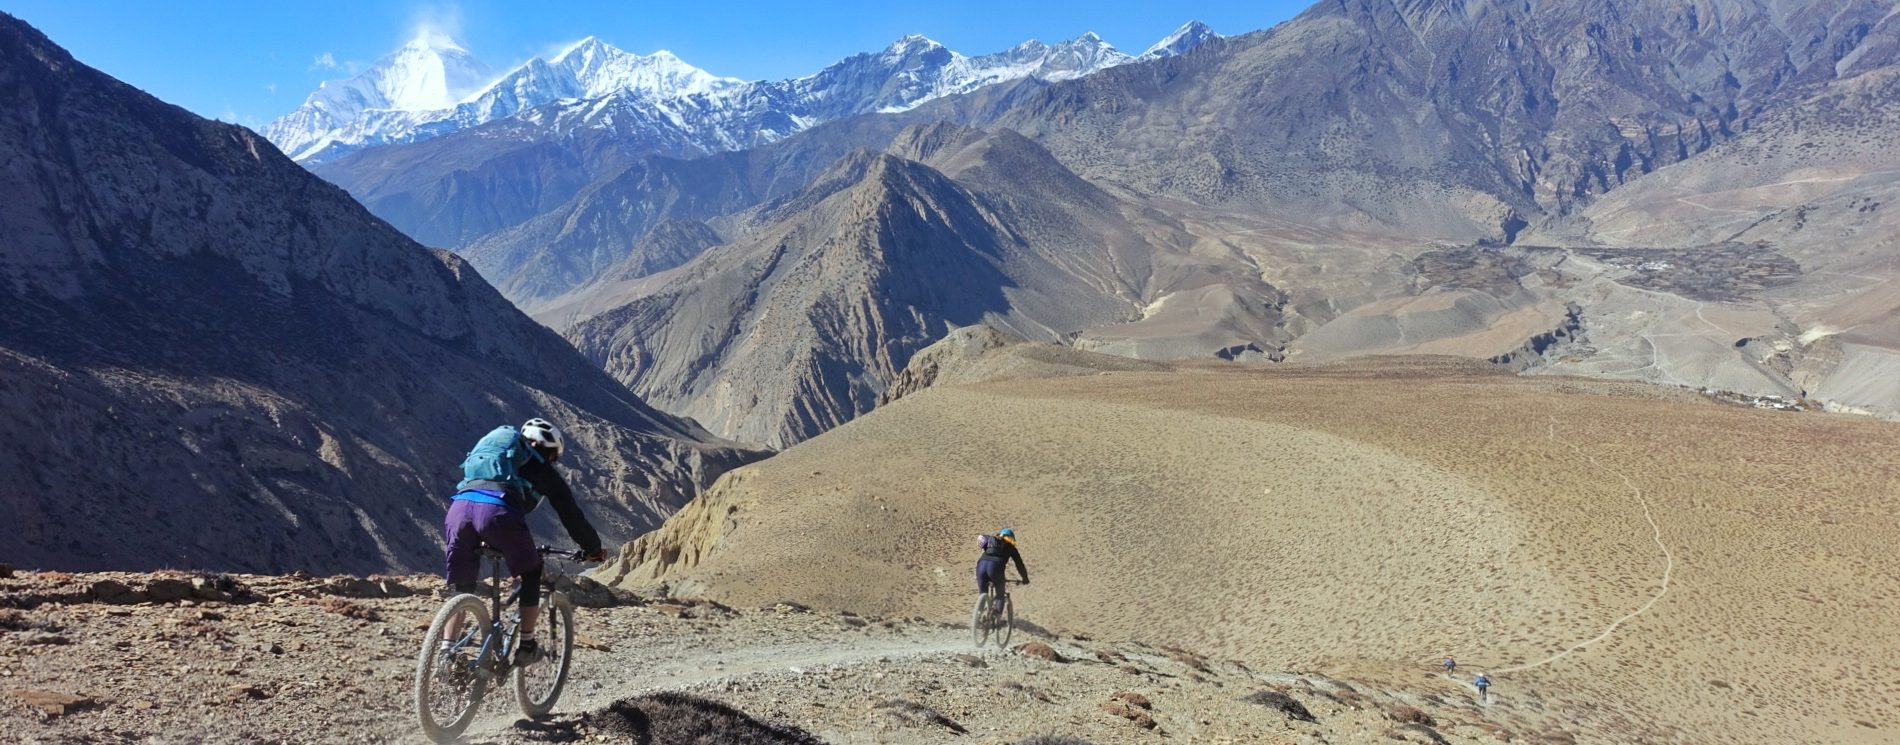 Mountain bike though the highest mountains in the world in Nepal